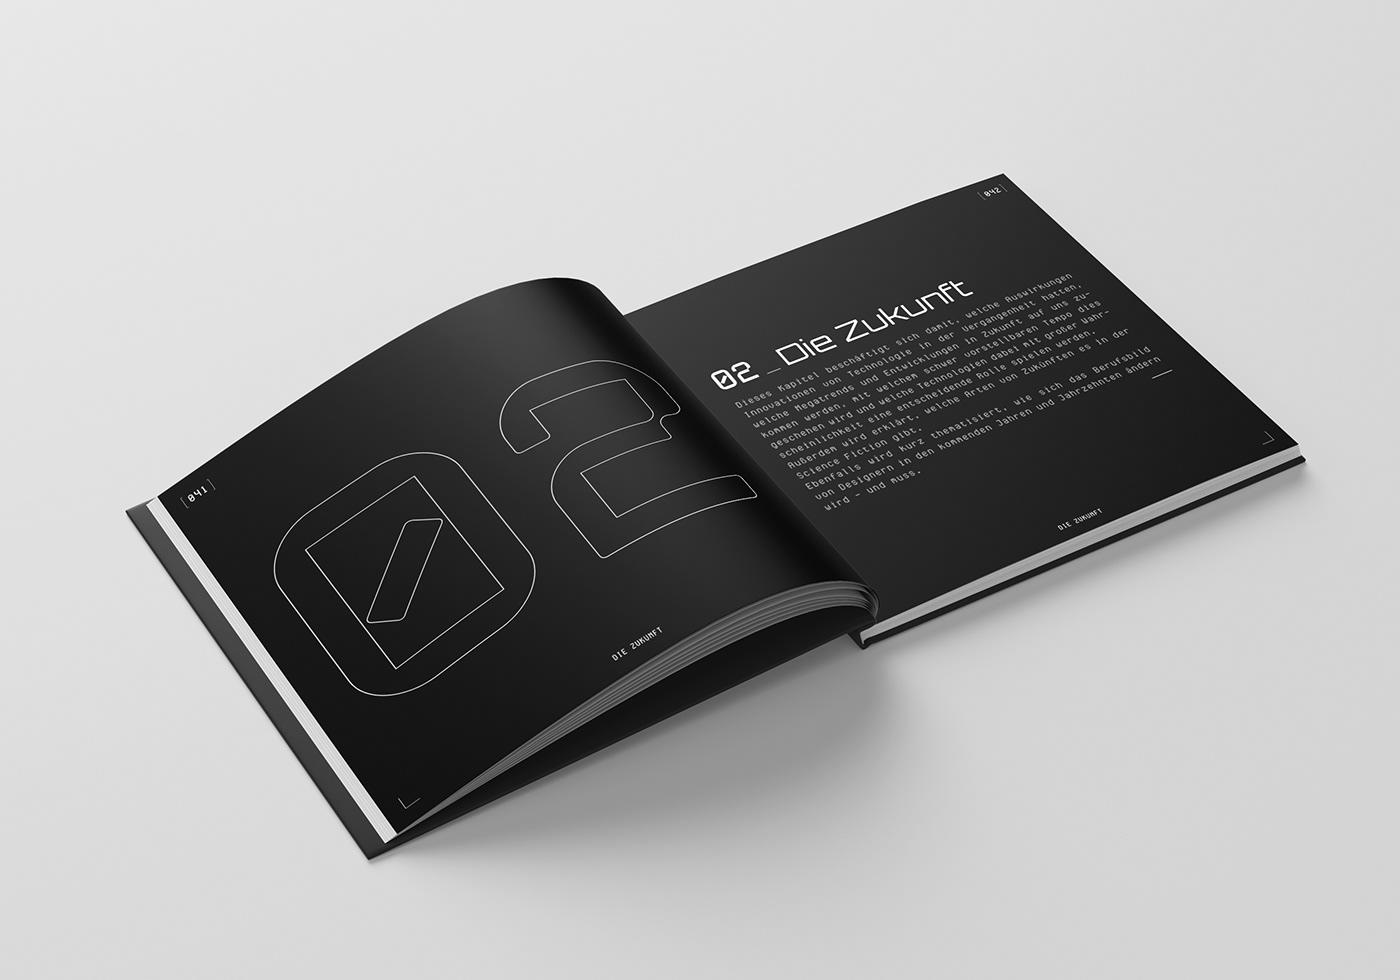 Bachelorthesis book Bookdesign bookillustration graphicdesign ILLUSTRATION  Layout print Sciencefiction Scifi